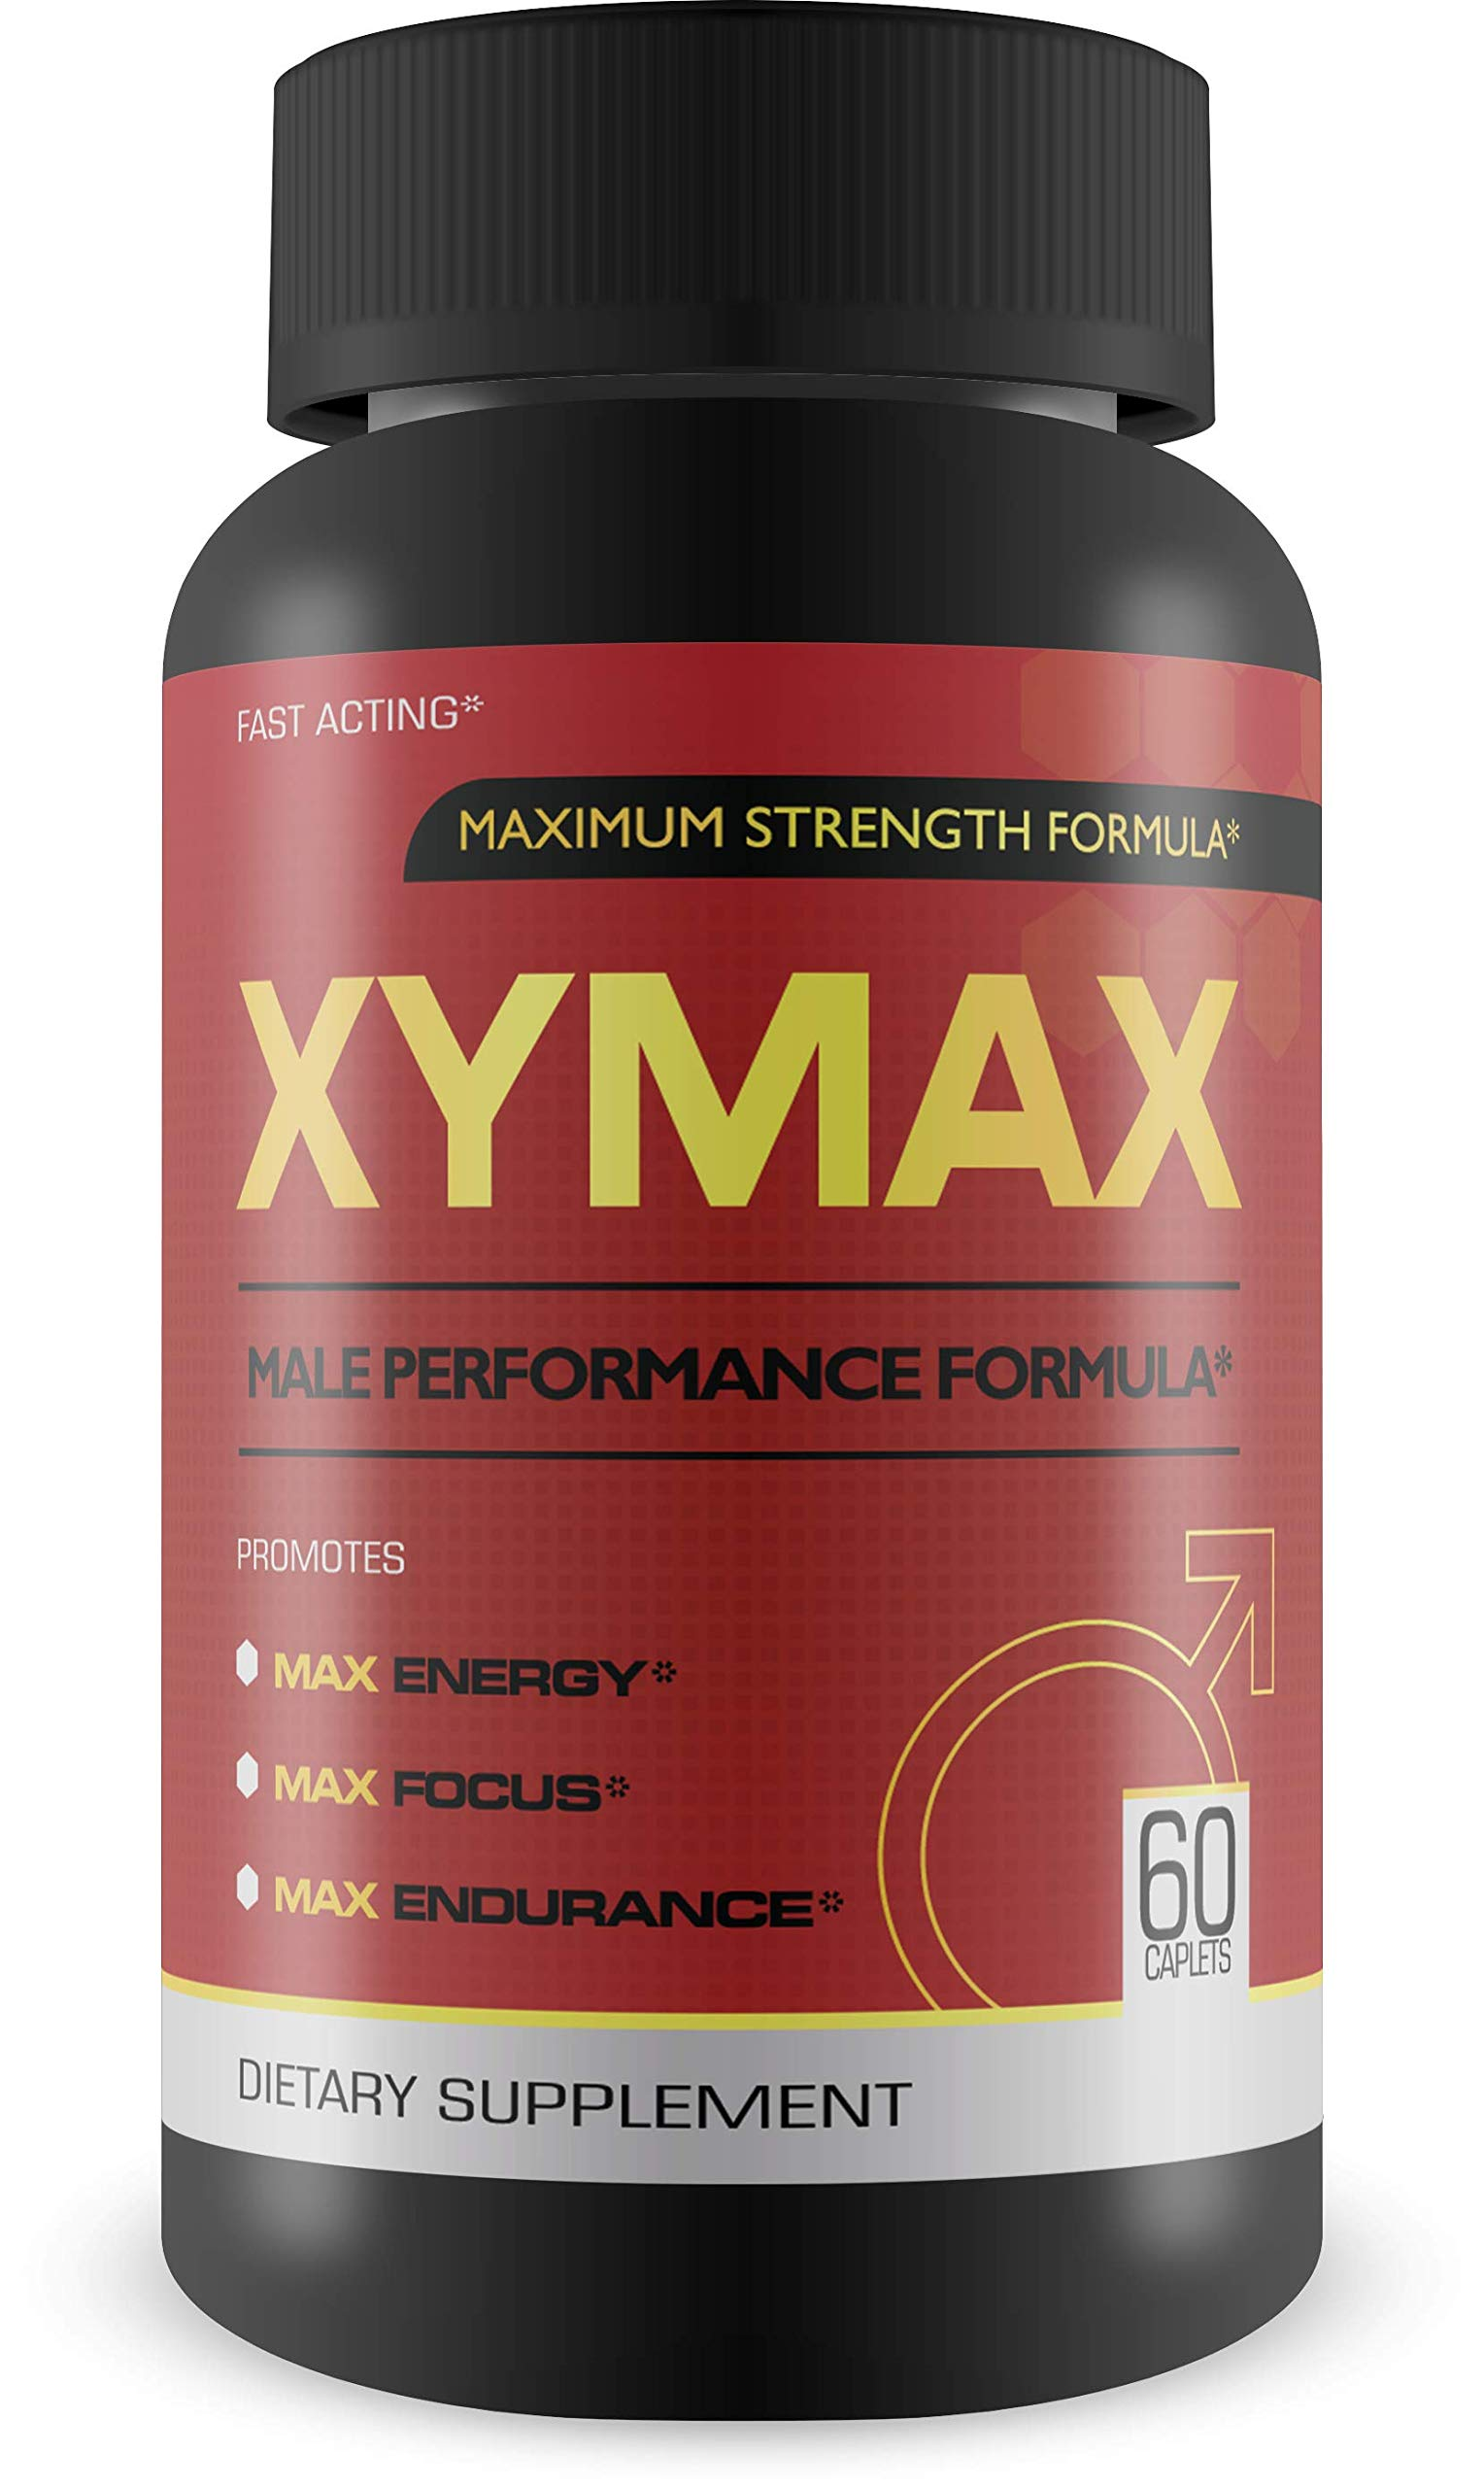 Xymax Male Performance Supplement- Maximum Strength Formula for Energy, Focus, Endurance 60 capsules